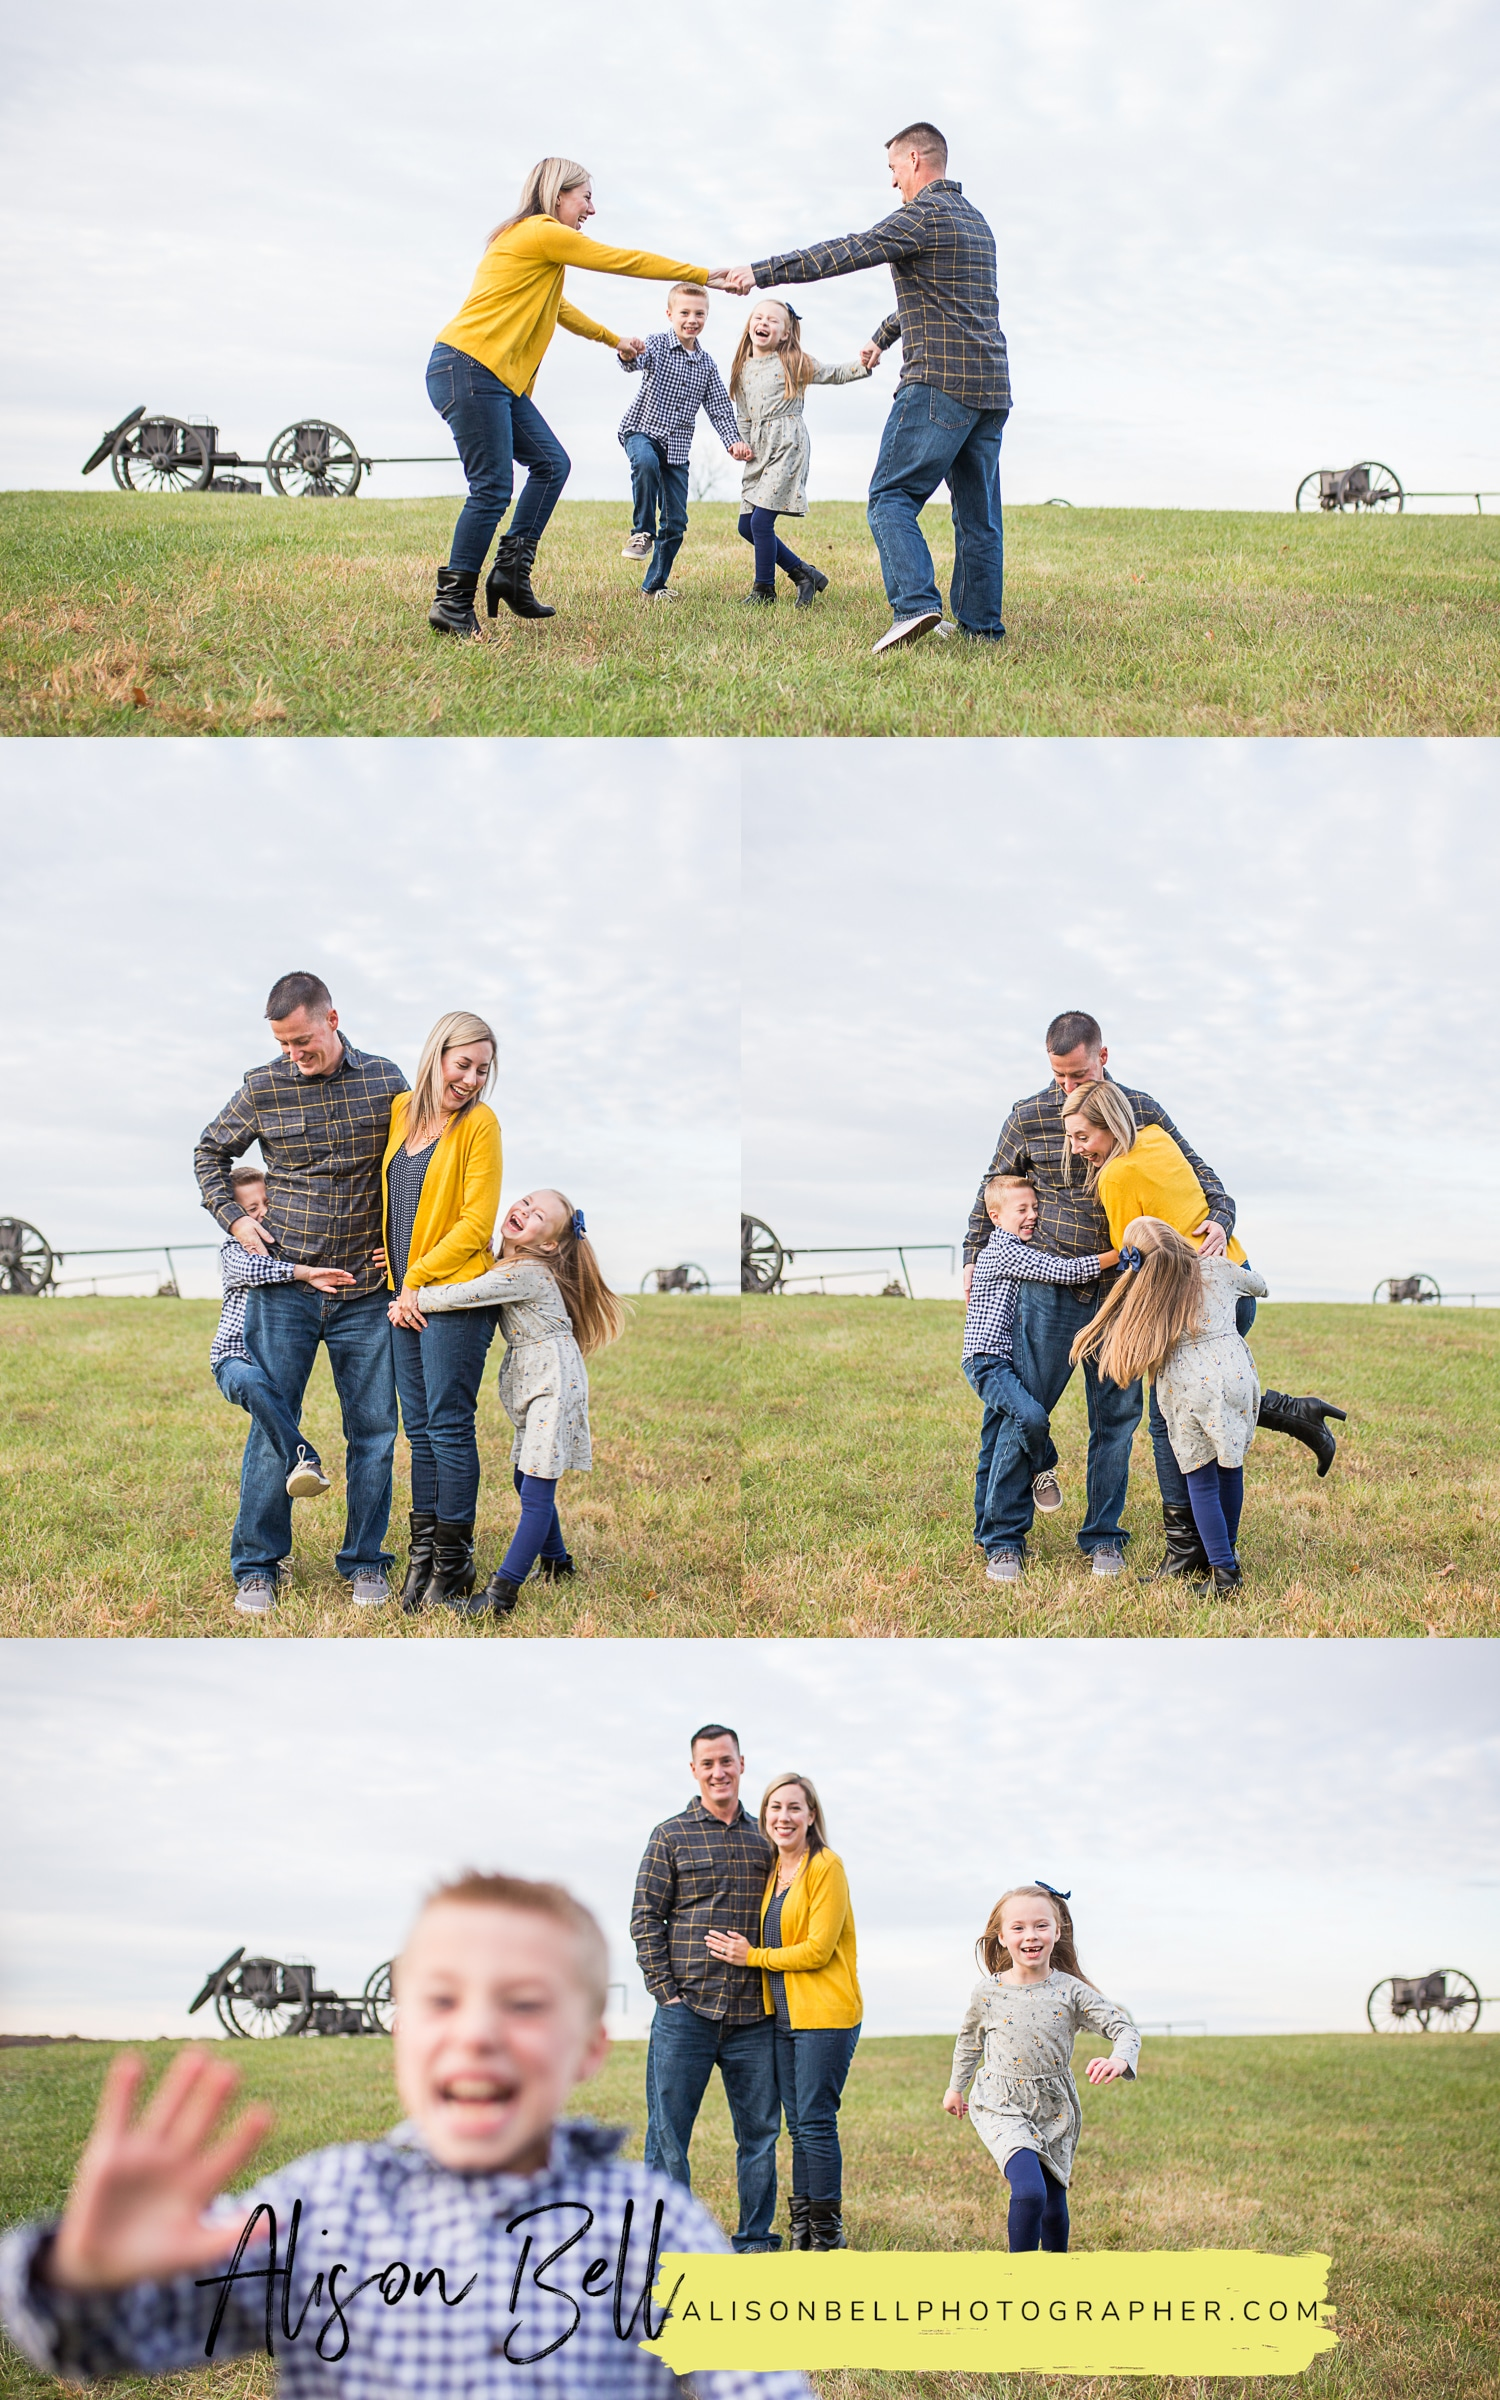 Manassas Civil War Battlefield in Northern Virginia. Family photo session by Alison Bell, Photographer of Quantico VA.